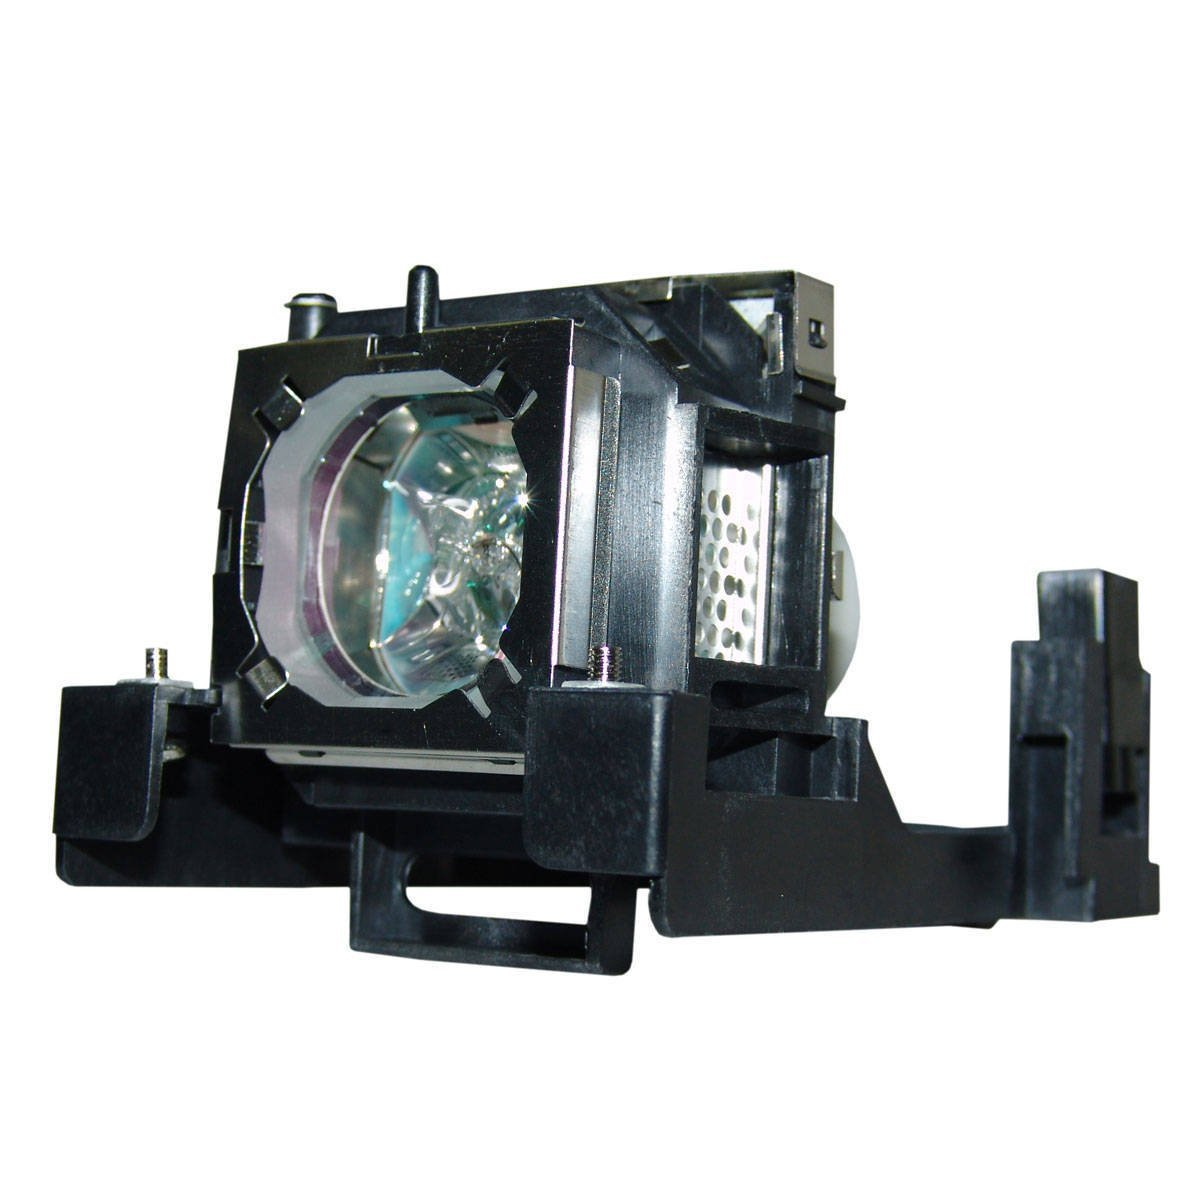 POA-LMP140 POALMP140 LMP140 610-350-2892 for SANYO PLC-WL2500 PLC-WL2501 PLC-WL2503 Projector Lamp Bulb with housing lamp housing for sanyo 610 3252957 6103252957 projector dlp lcd bulb